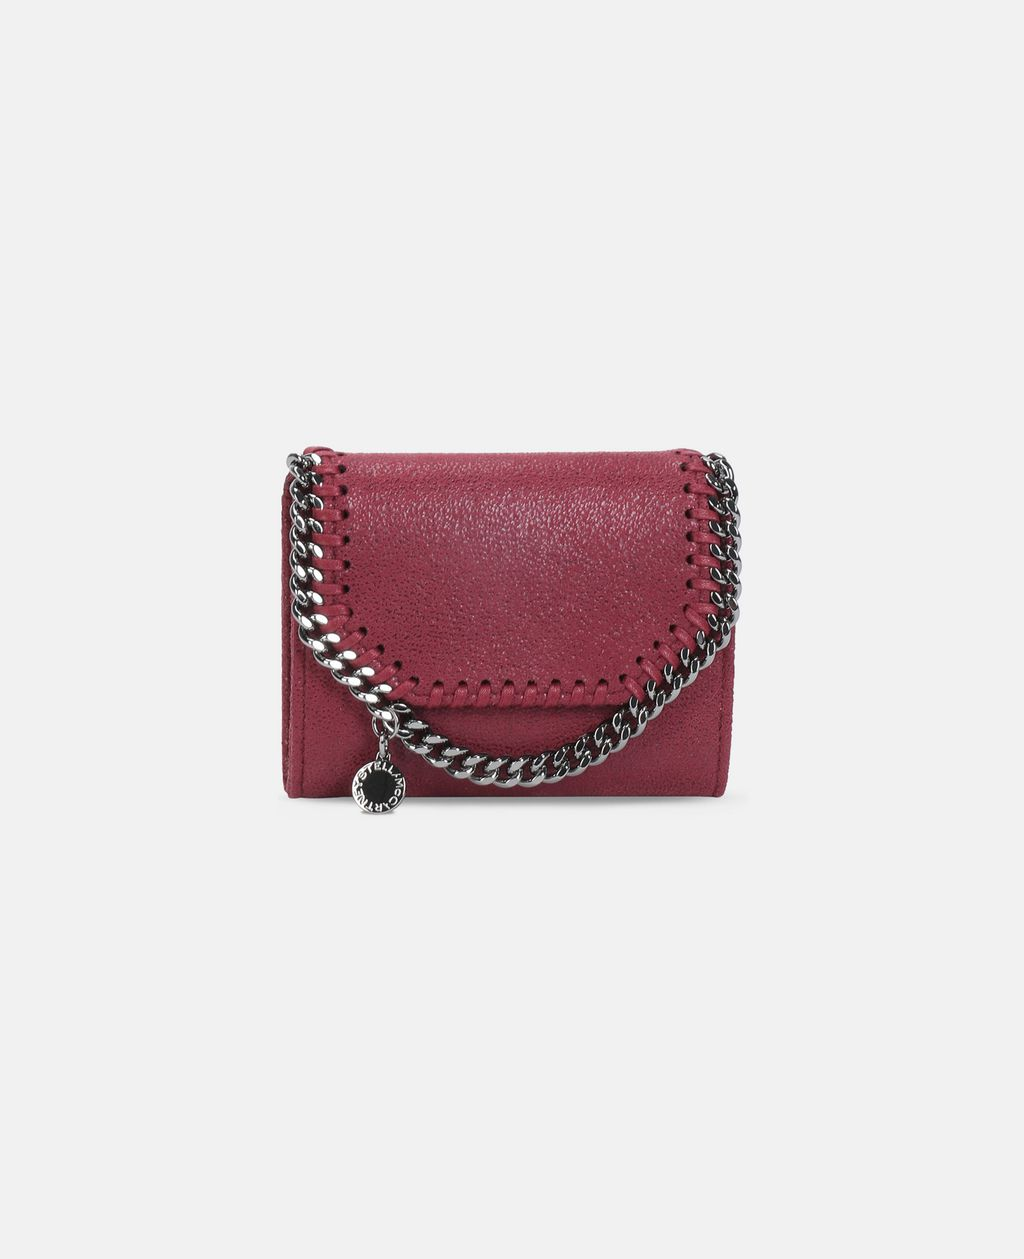 Stella Mccartney Wallets & Purses, Red